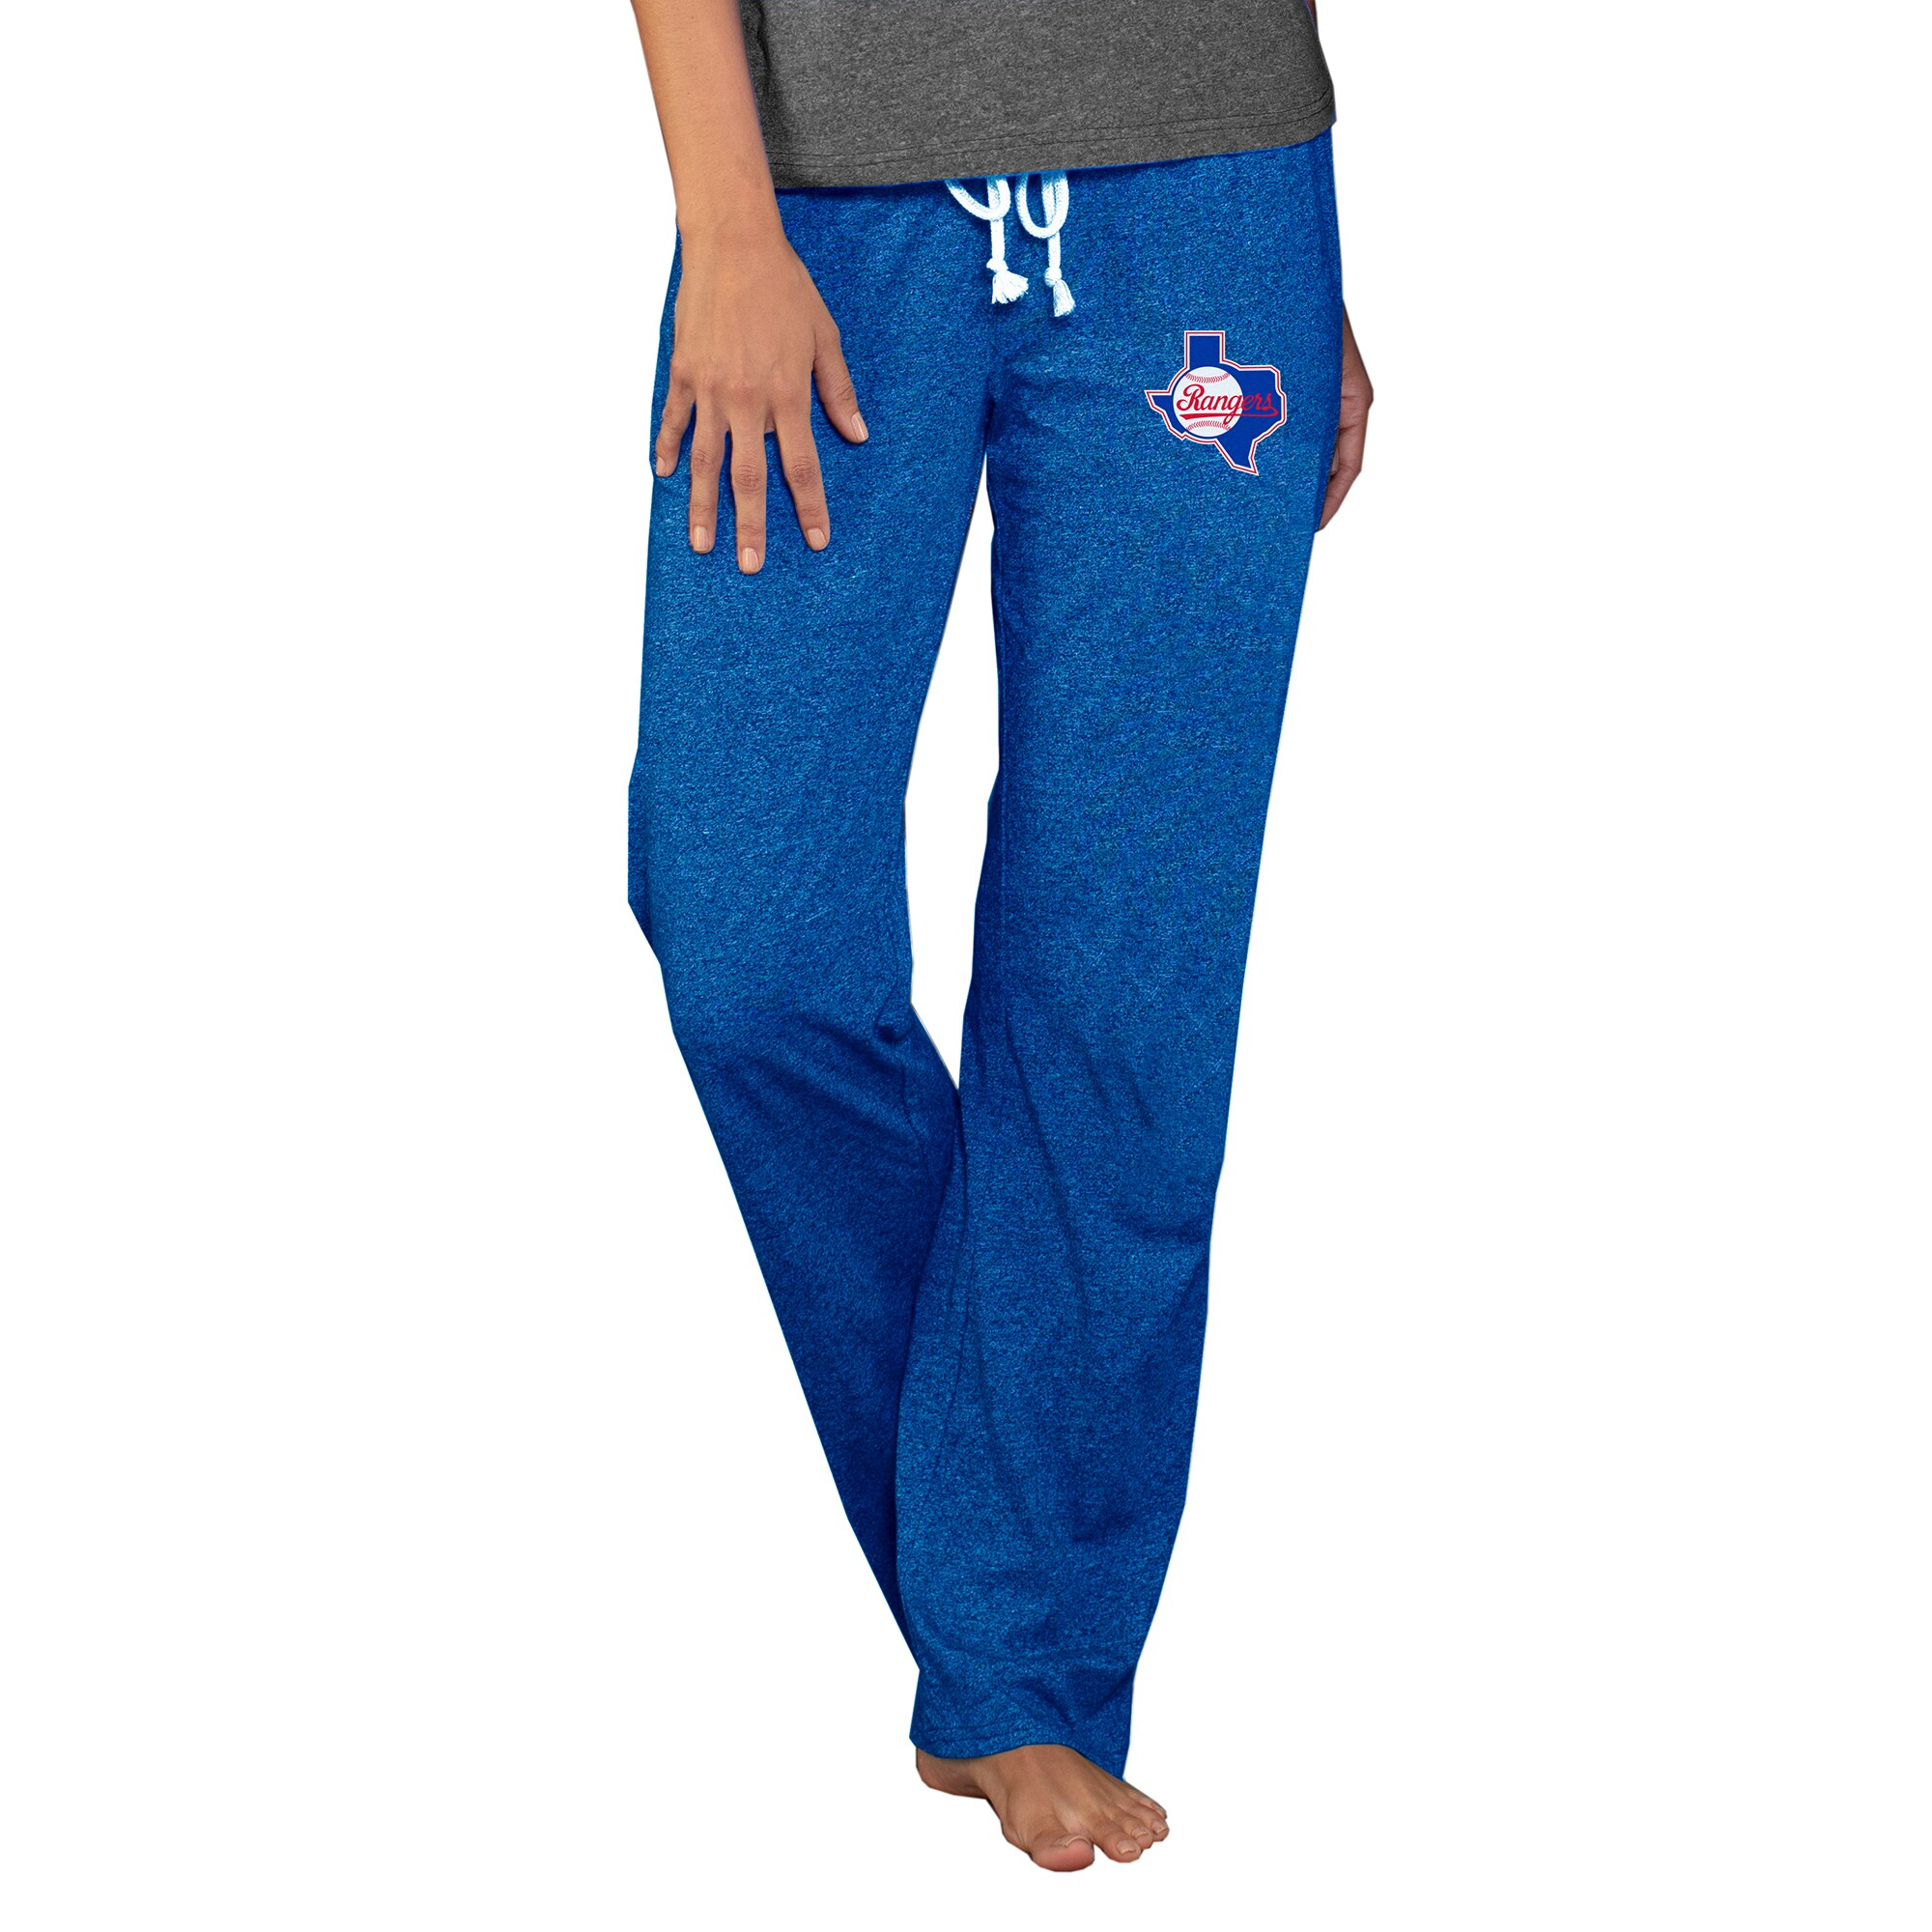 Texas Rangers Concepts Sport Women's Cooperstown Quest Knit Pants - Royal